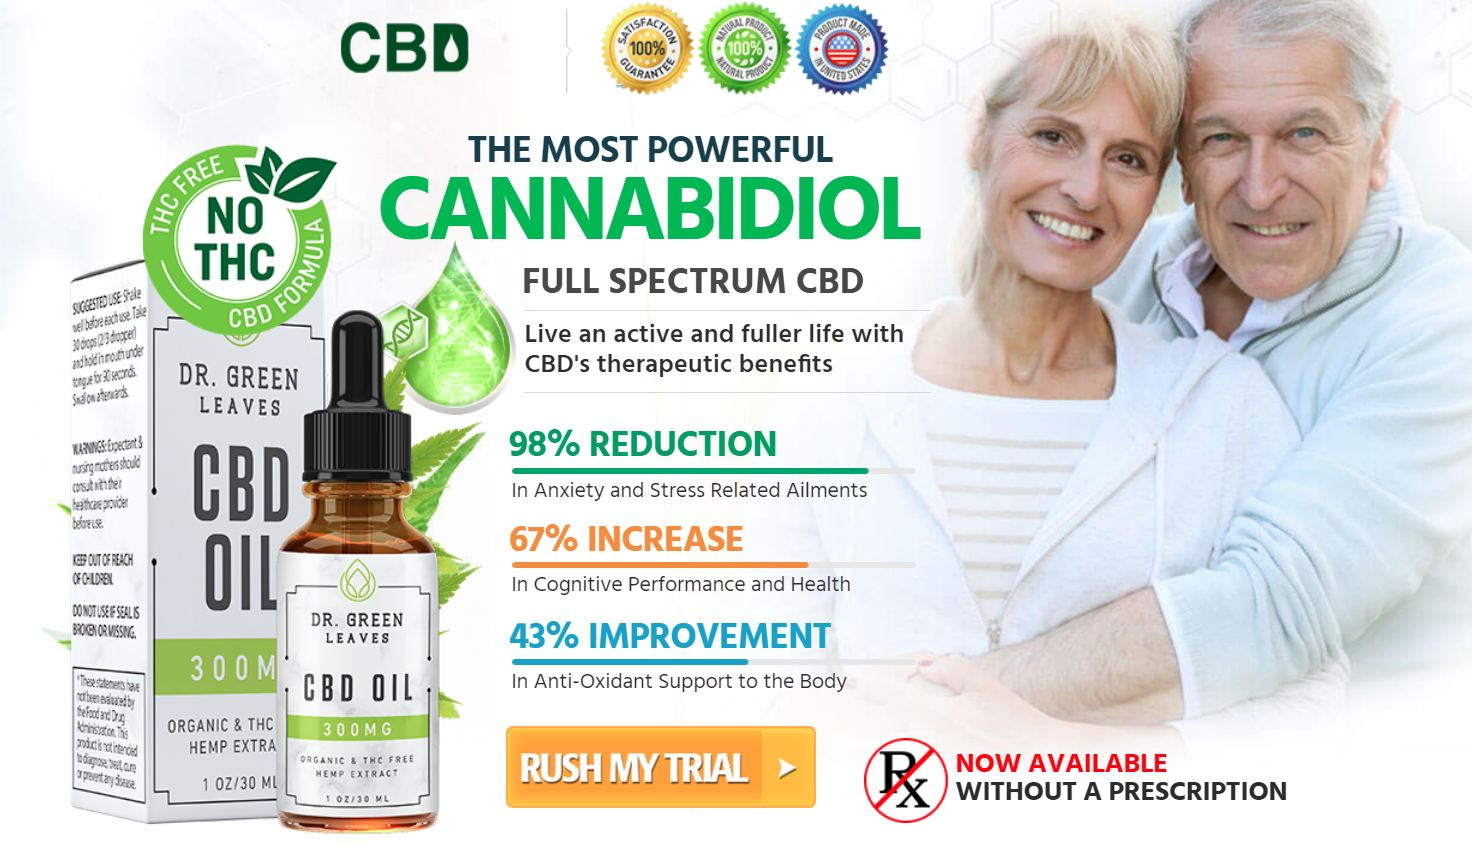 Dr. Green Leaves CBD Oil USA